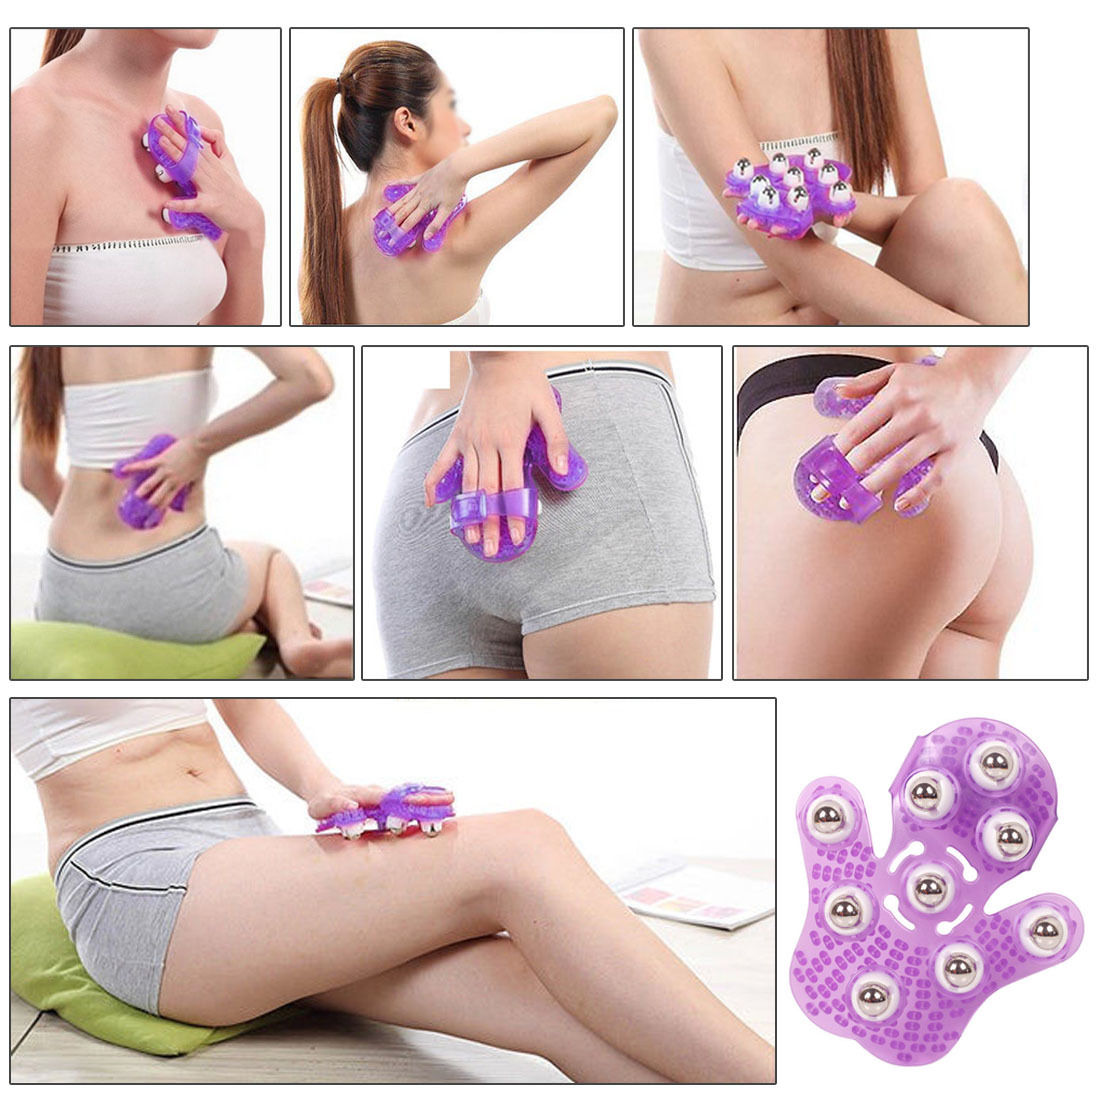 Roller Ball Body Massage Glove Anti-Cellulite Muscle Pain Relief Relax Massager For Neck Back Shoulder Buttocks Face Lift Tools